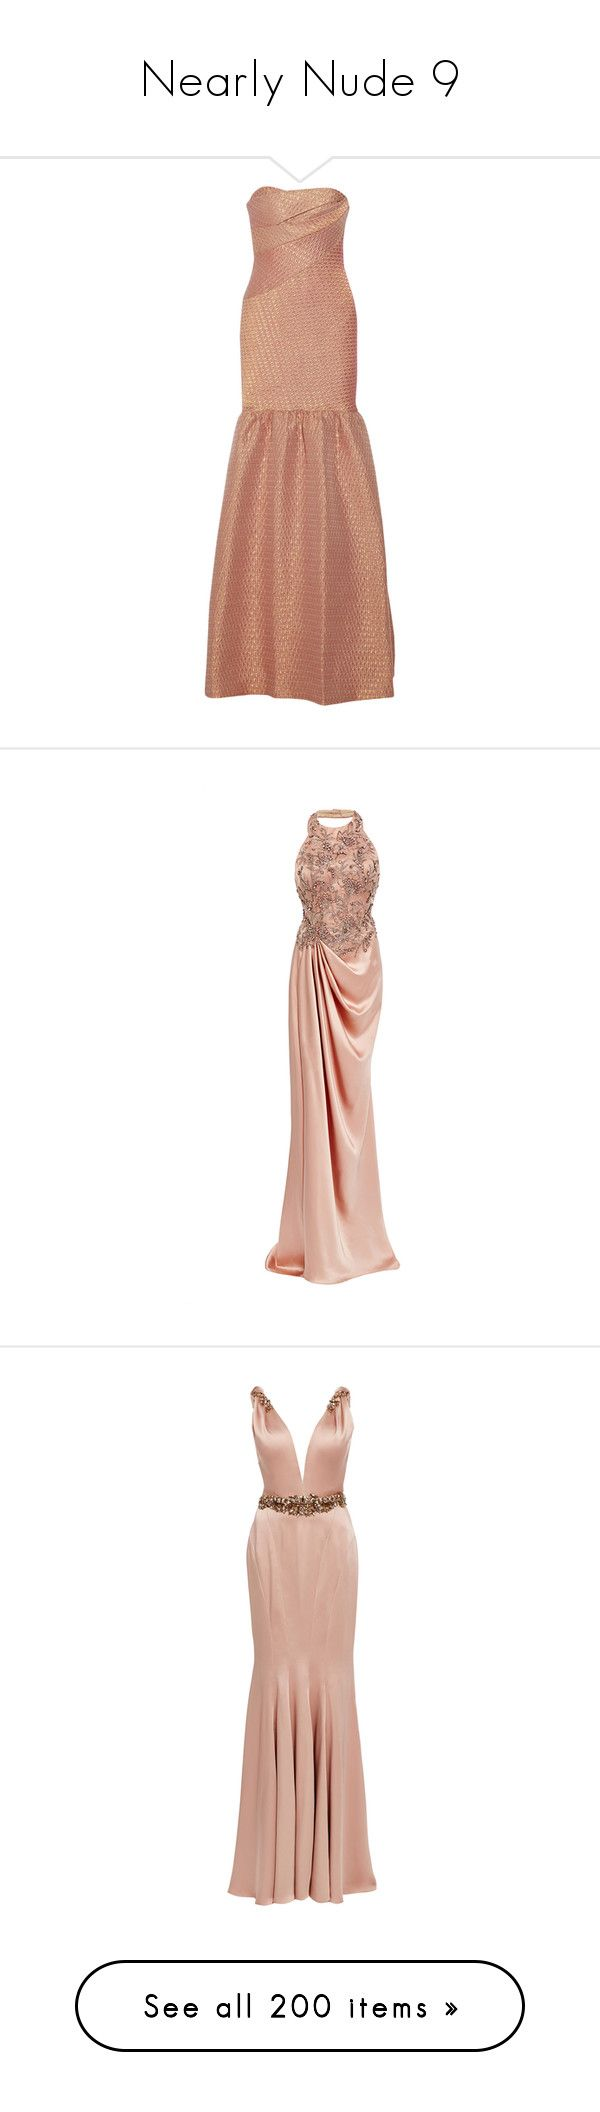 """Nearly Nude 9"" by little-ray-of-sunshine-li ❤ liked on Polyvore featuring dresses, gowns, long dress, maxi dress, beige maxi dress, metallic evening dress, beige dress, maxi gown, metallic gown and marchesa"